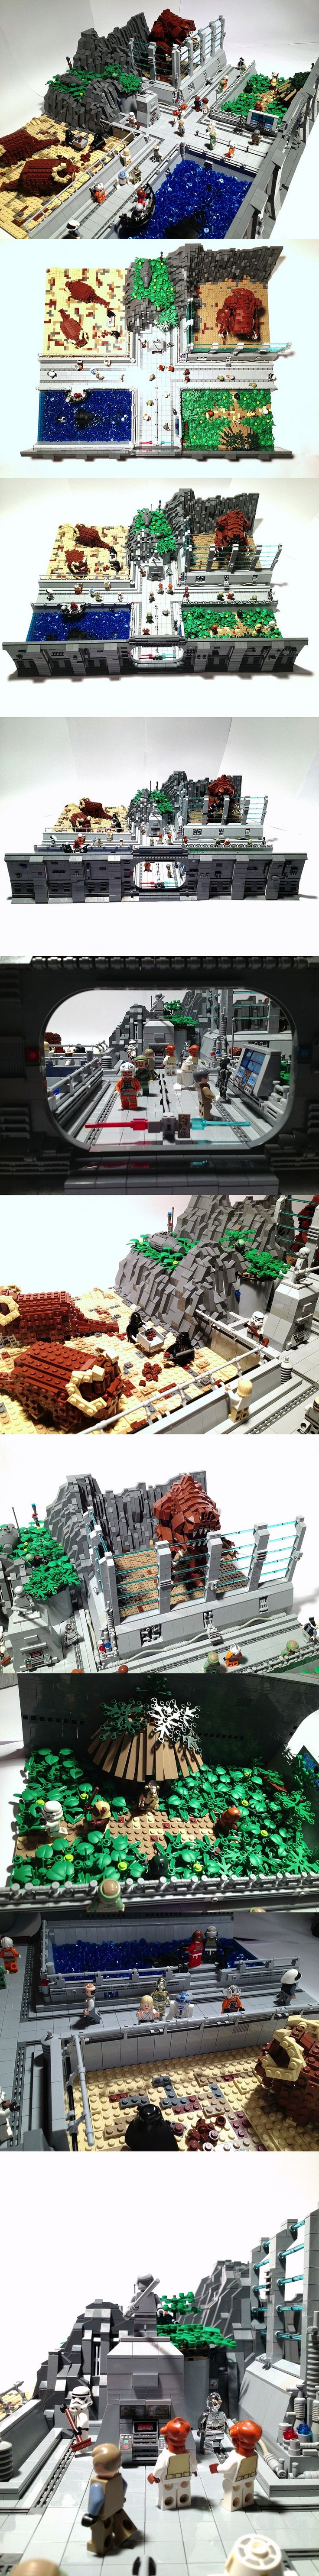 LEGO Star Wars Museum